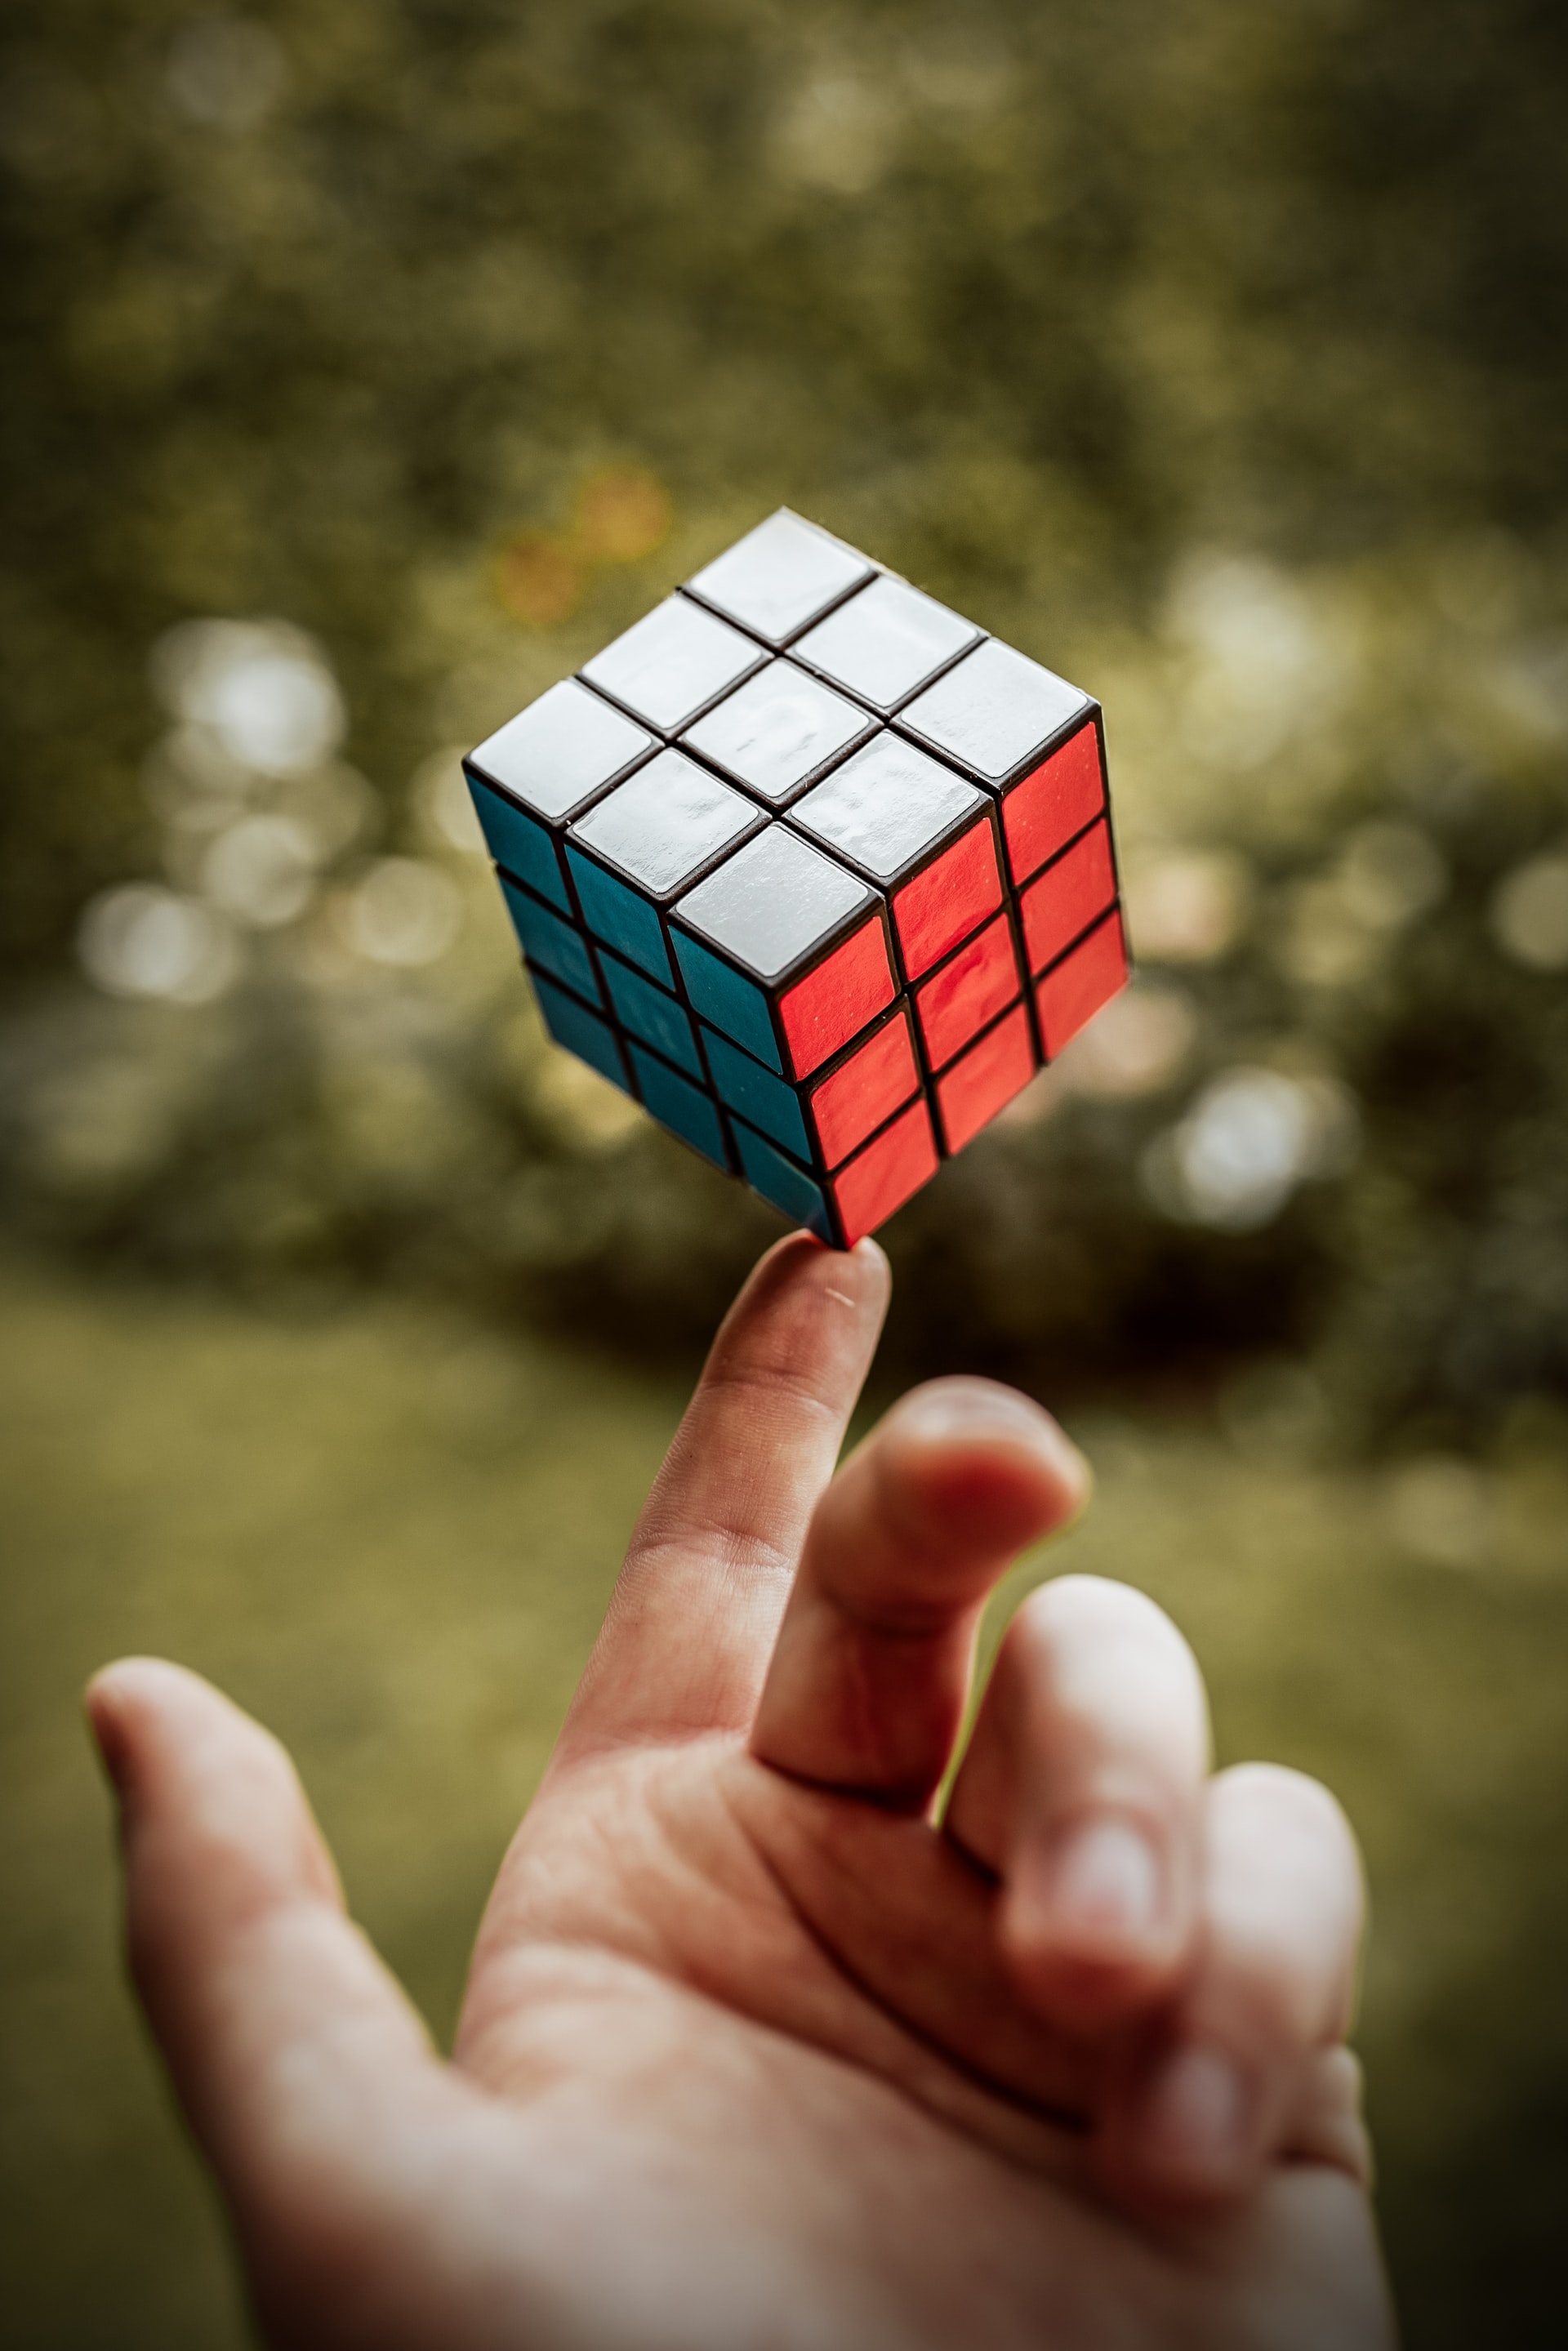 rubix cube balanced on finger